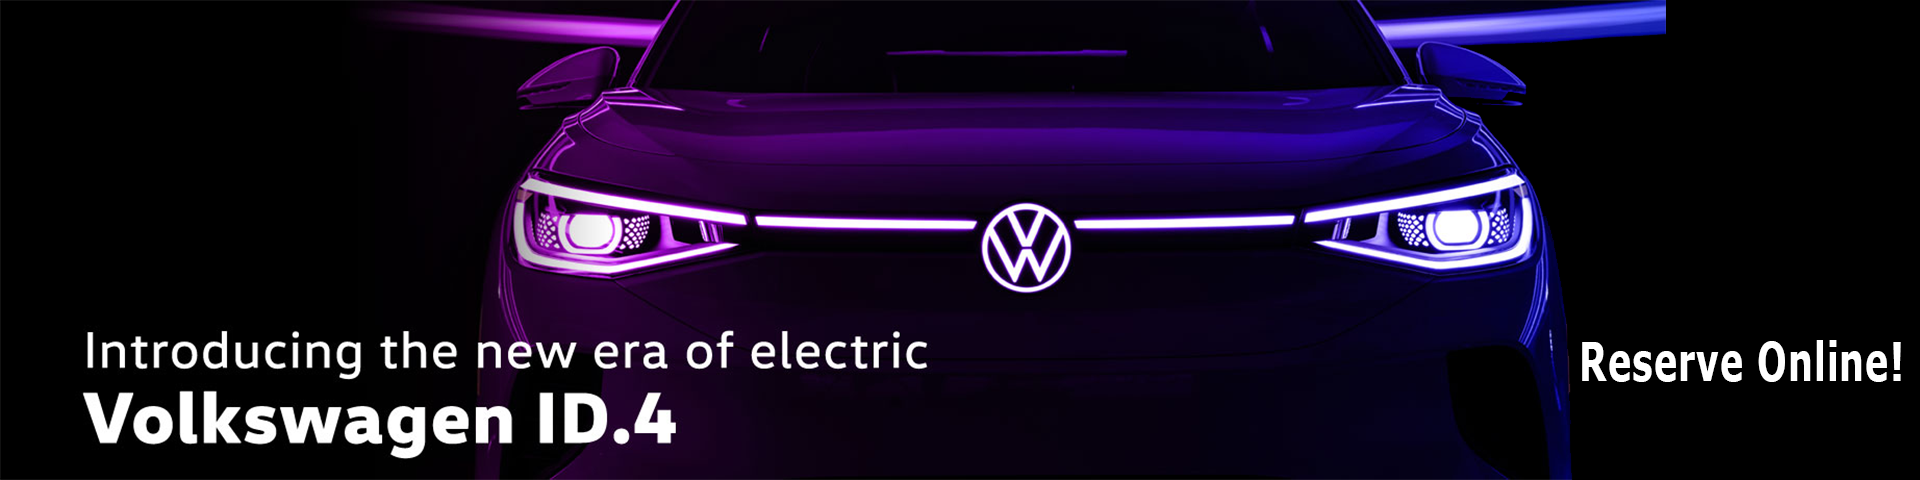 VW-ID.4-FOR-JAN